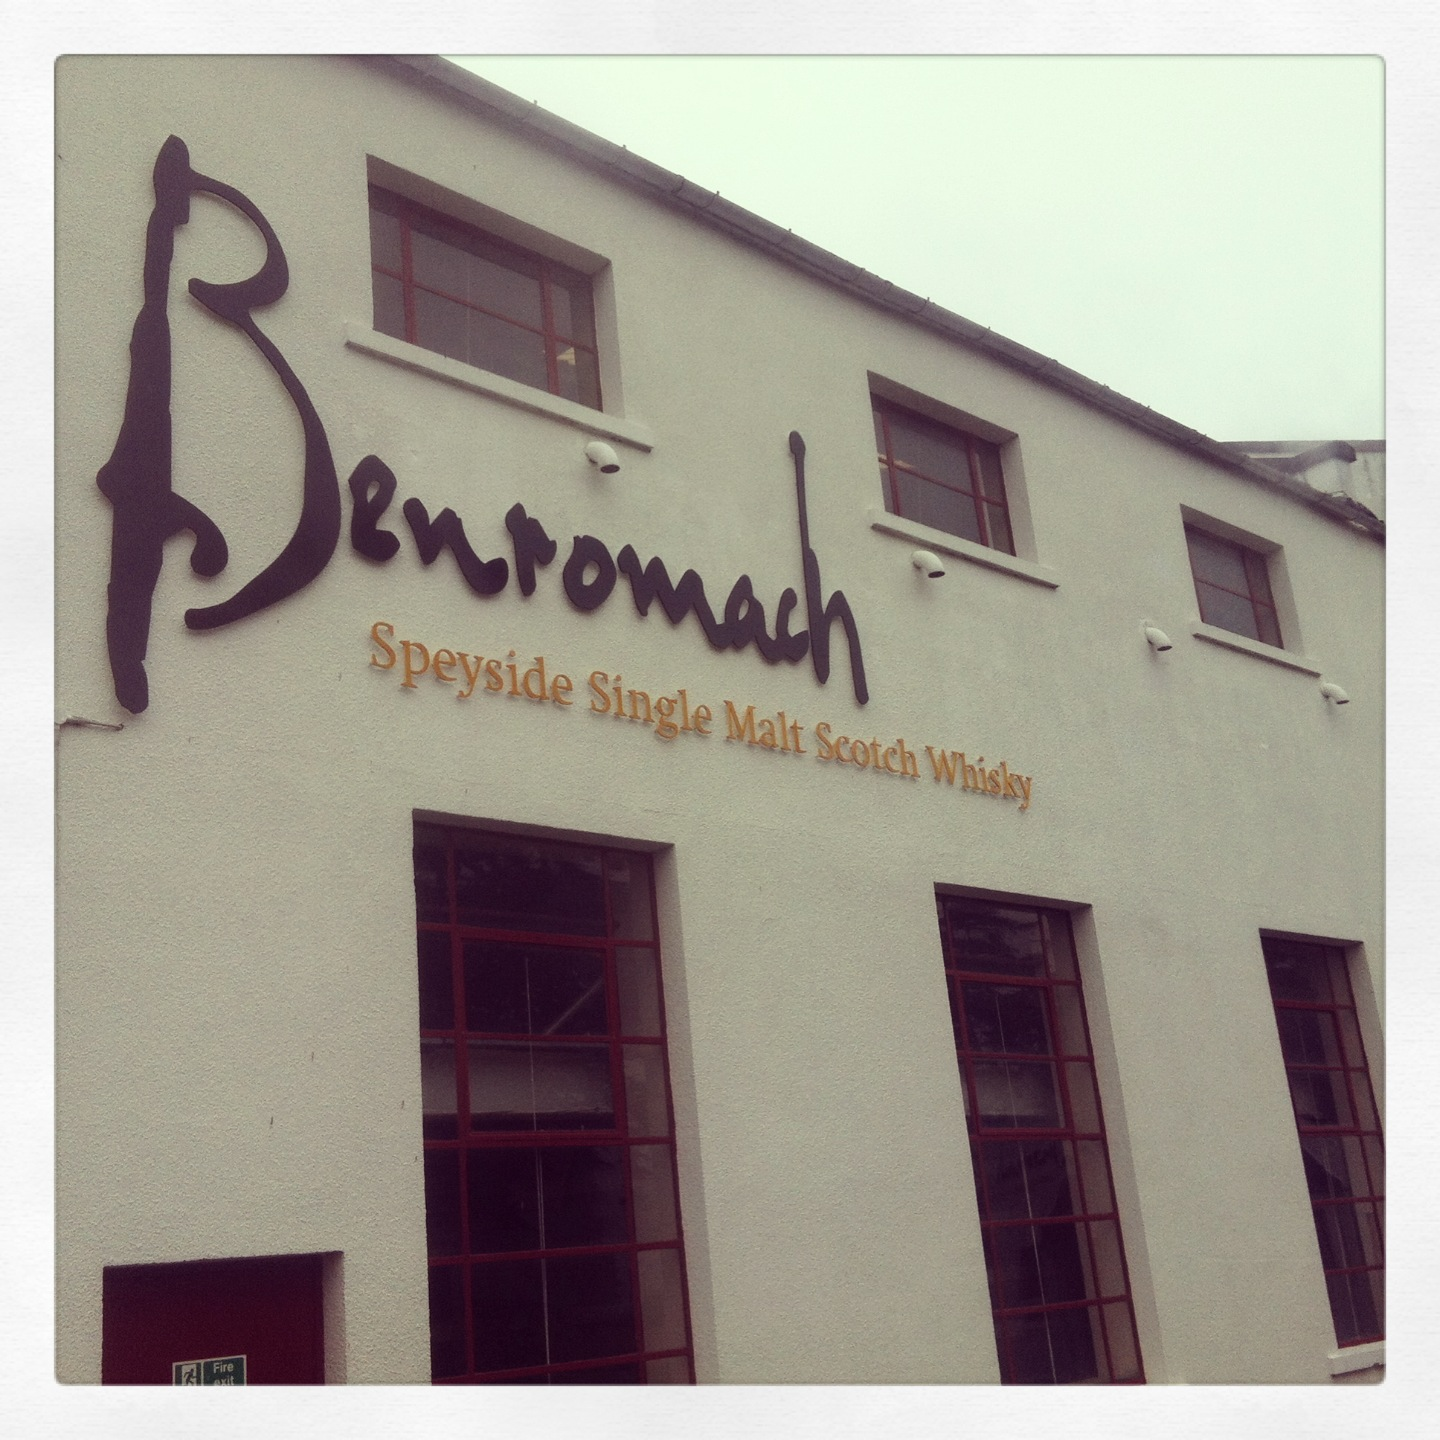 /files/whisky/Benromach photo.jpg